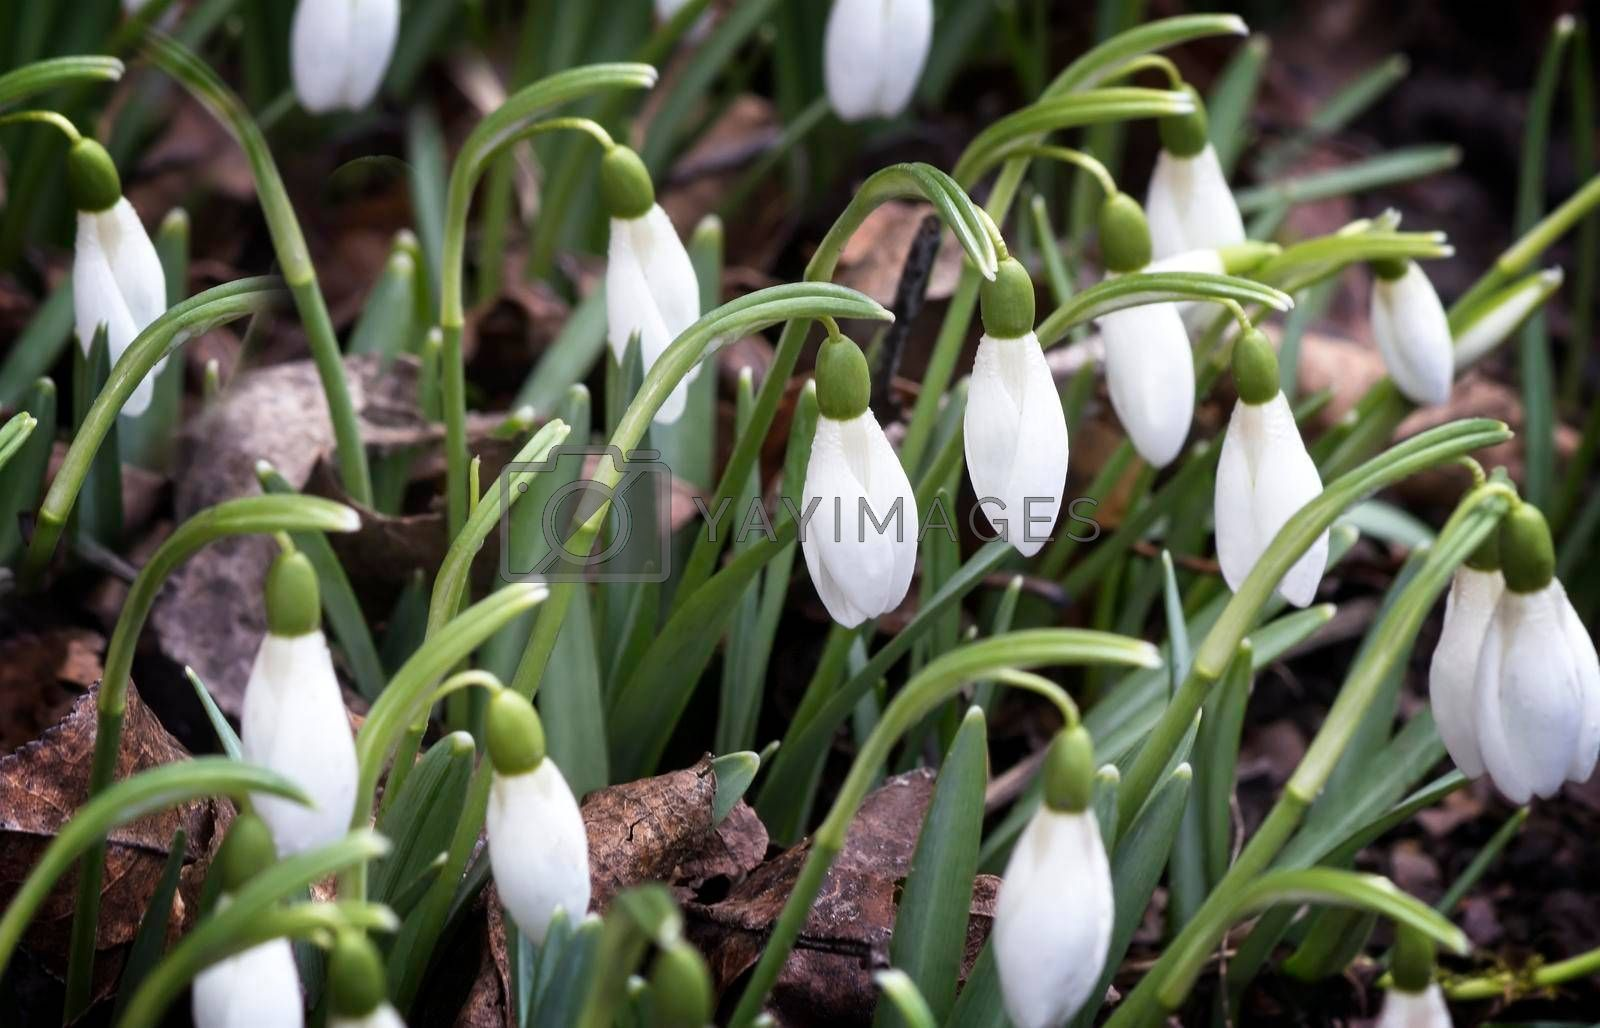 White flowers and buds of snowdrops among a green grass.